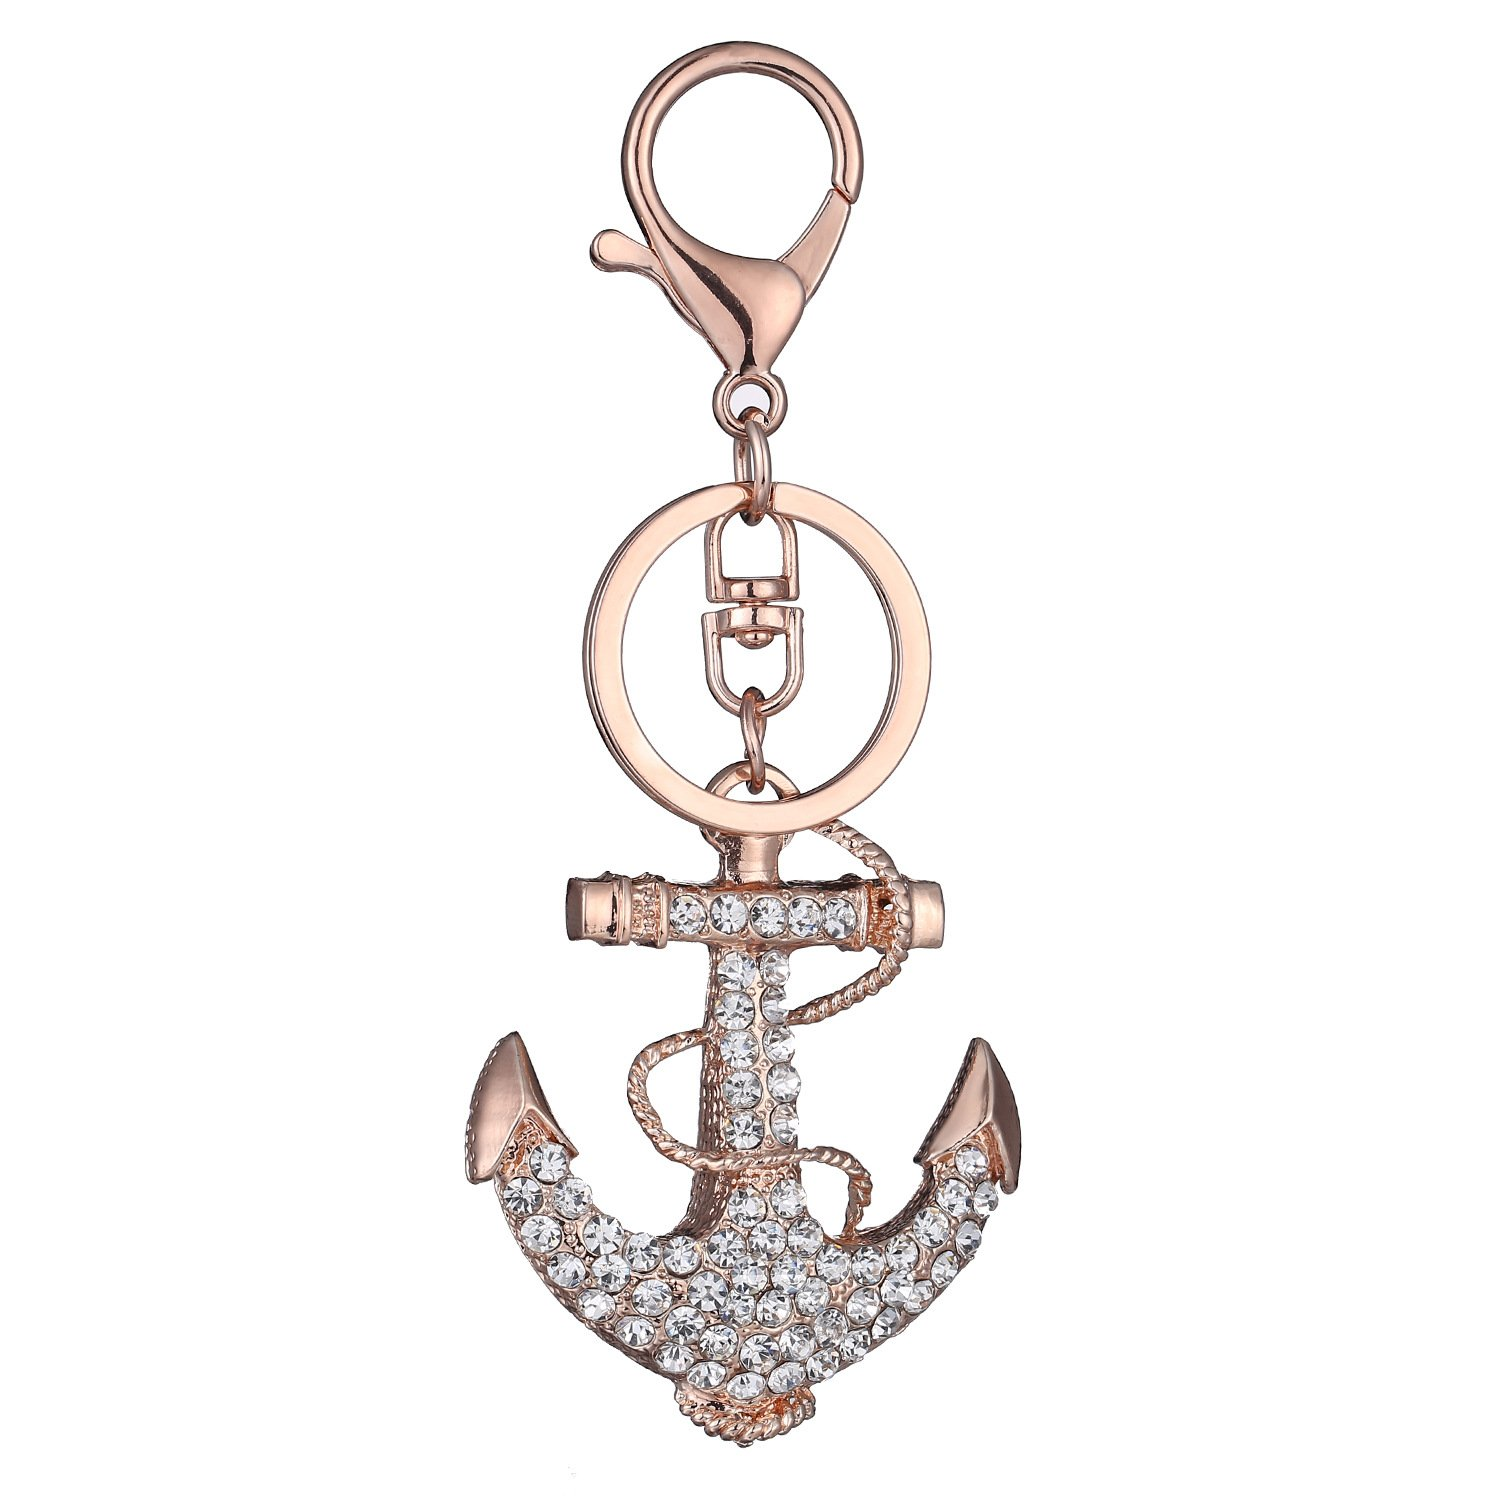 DYbaby Bling Bling Crystal Keychain Lovely Handbag Decoration Car Key Decoration for Womens and Girls (Boat Anchor)